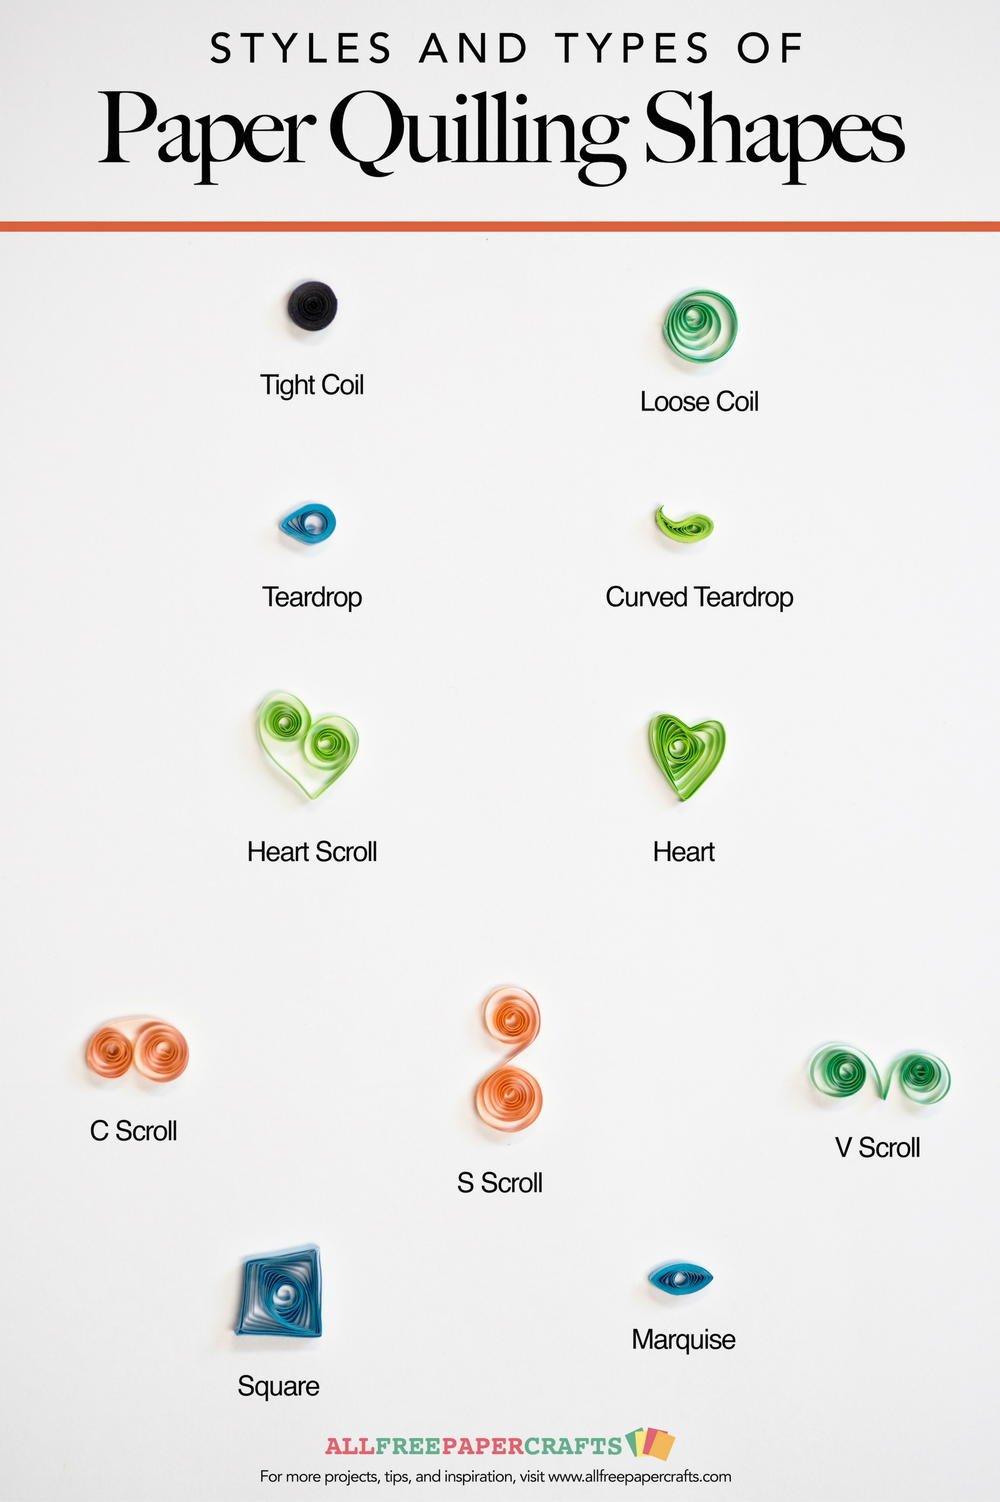 Paper Quilling Shapes Infographic